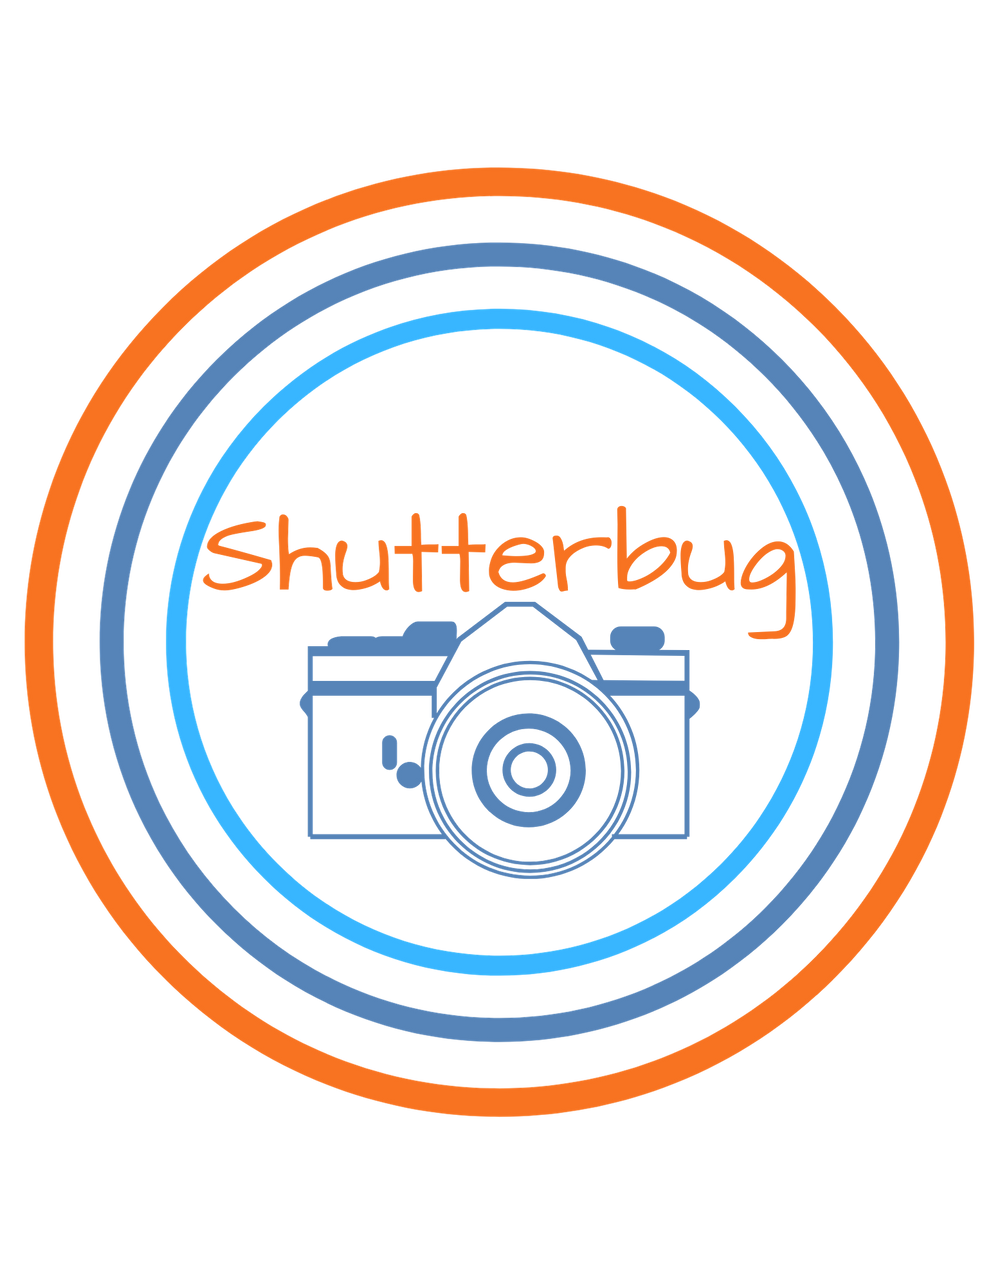 Camera Shutterbug T-Shirt - Shutterbug Shop